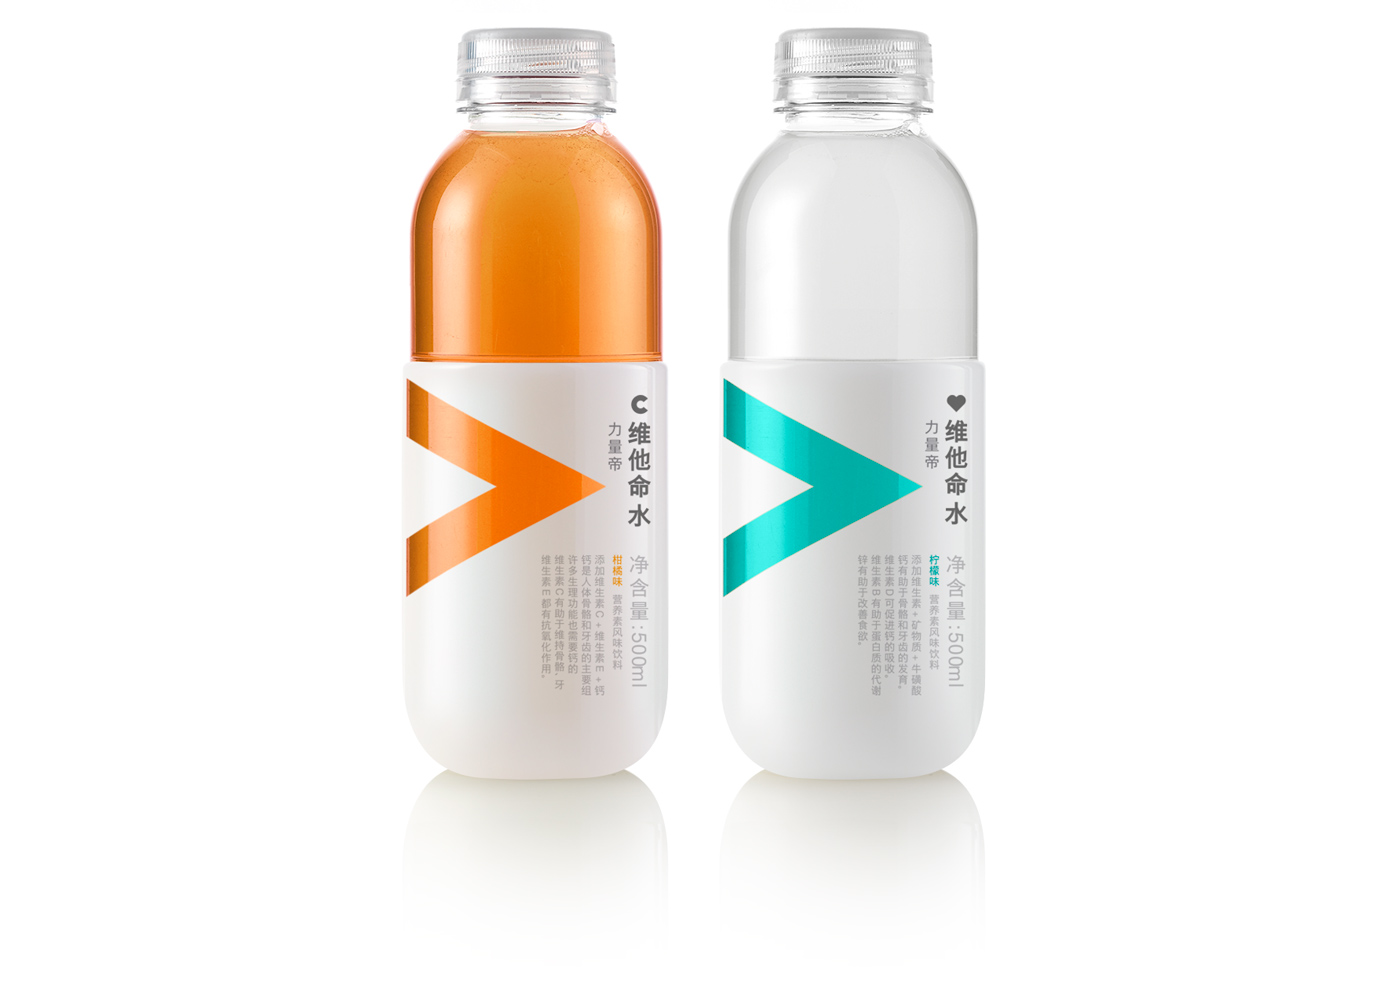 Global vitamin water buyers find suppliers here every day. If you are a manufacturer or supplier who want more international buyers, join EC21 for free now, and get your products listed here.